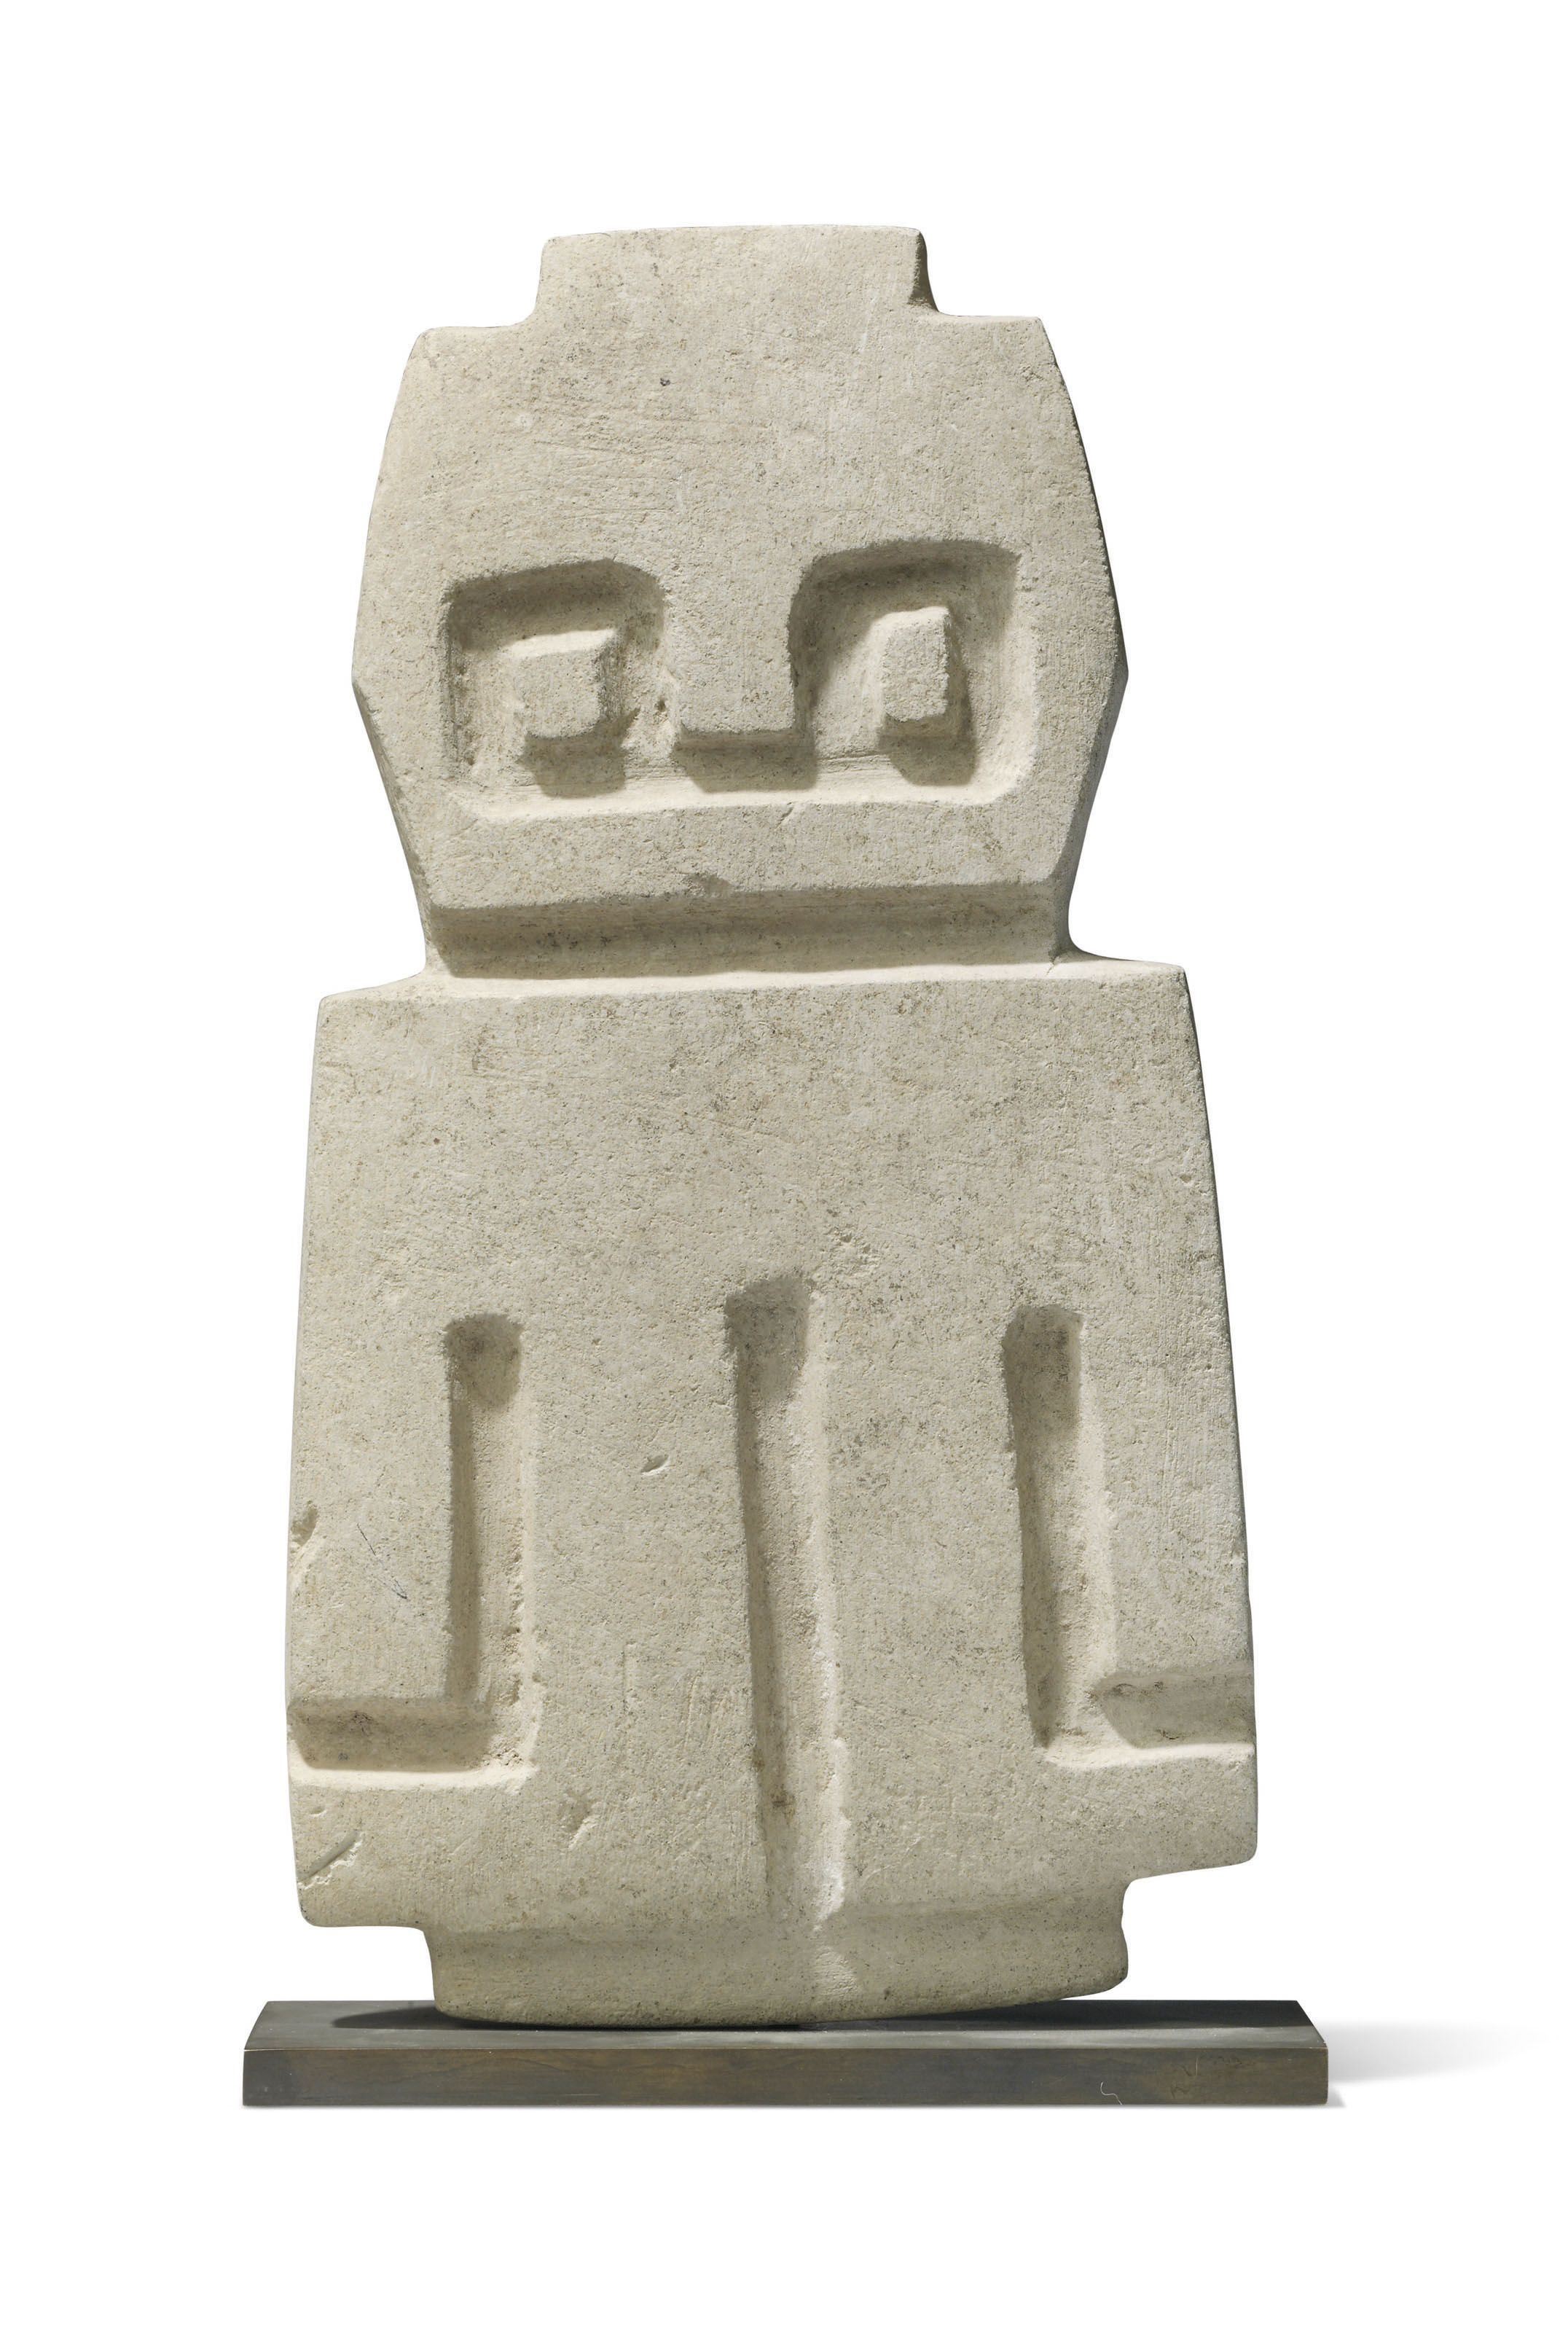 Valdivia Stone Figure Circa 2300 2000 B C Christie S Prehistoric Art Metal Working Projects Stone Carving